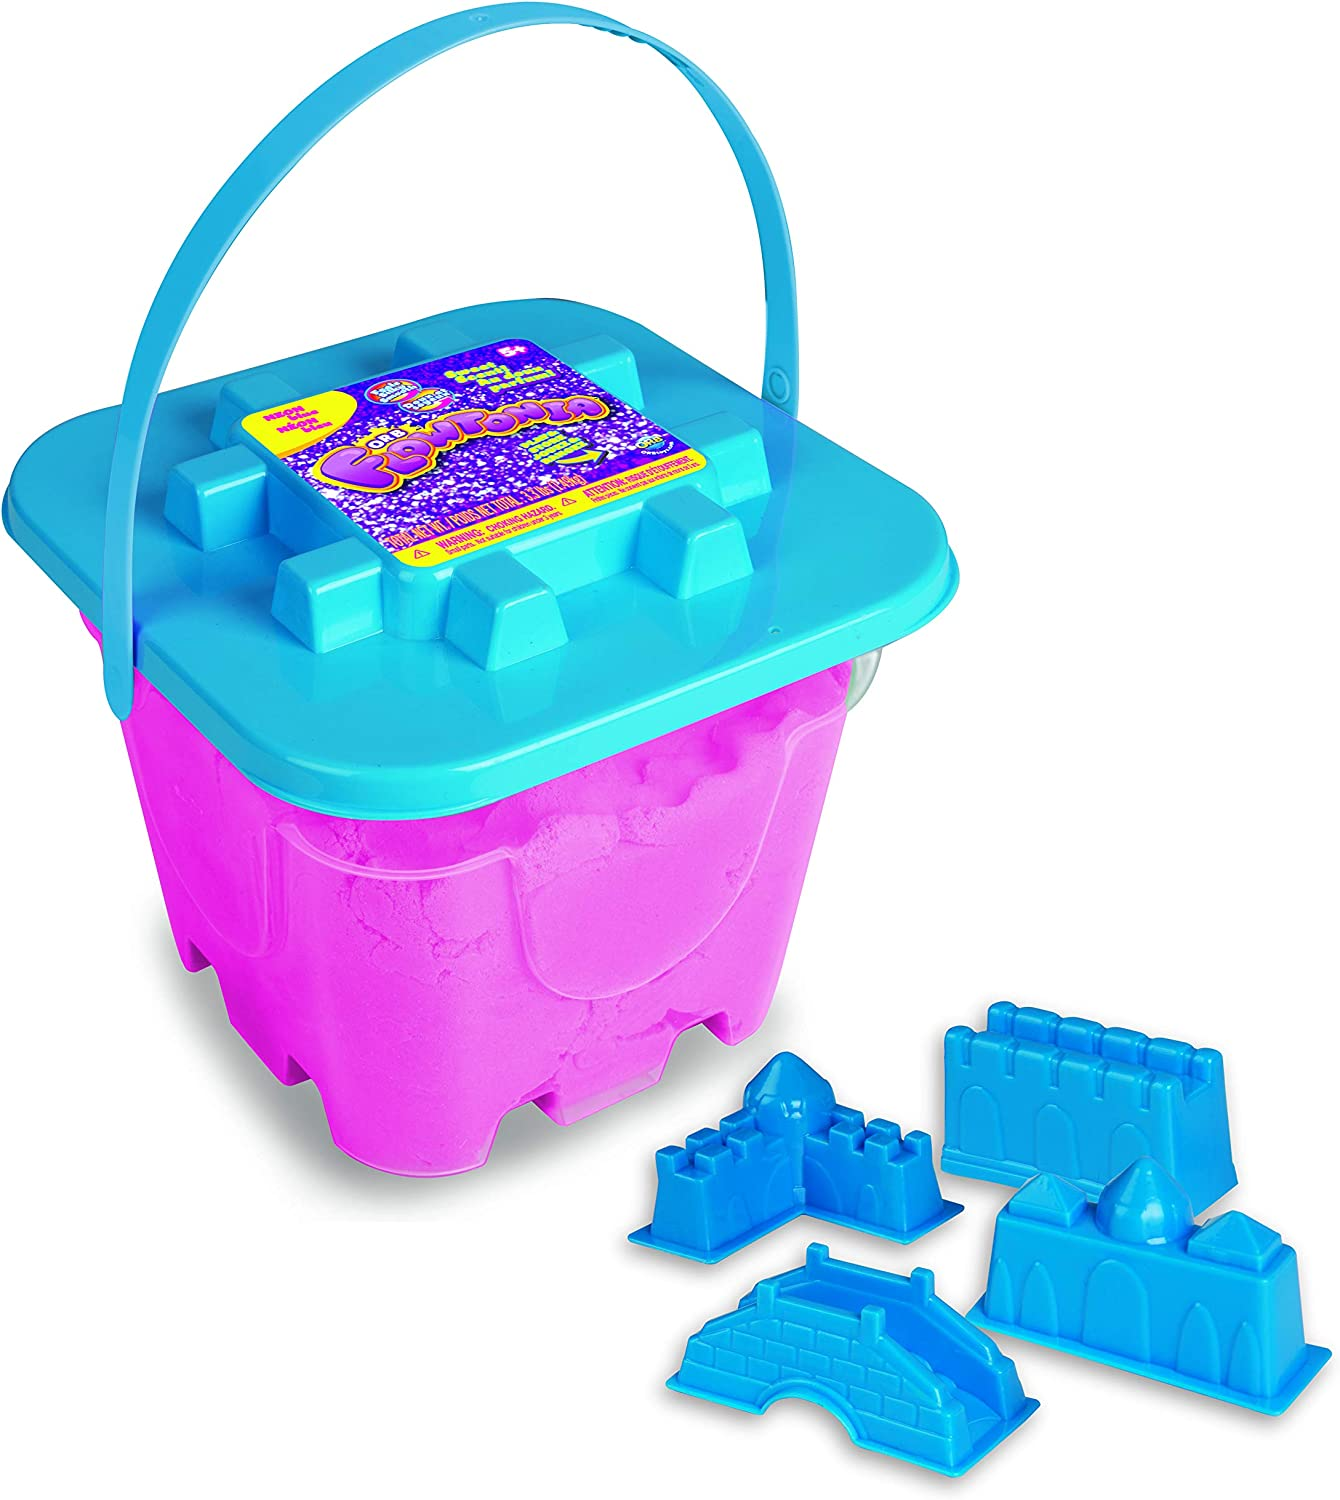 Orb Flowtonia Play Bucket Stretchy Free Flowing Fun 1.5 lbs of Tactile Blue Moldable